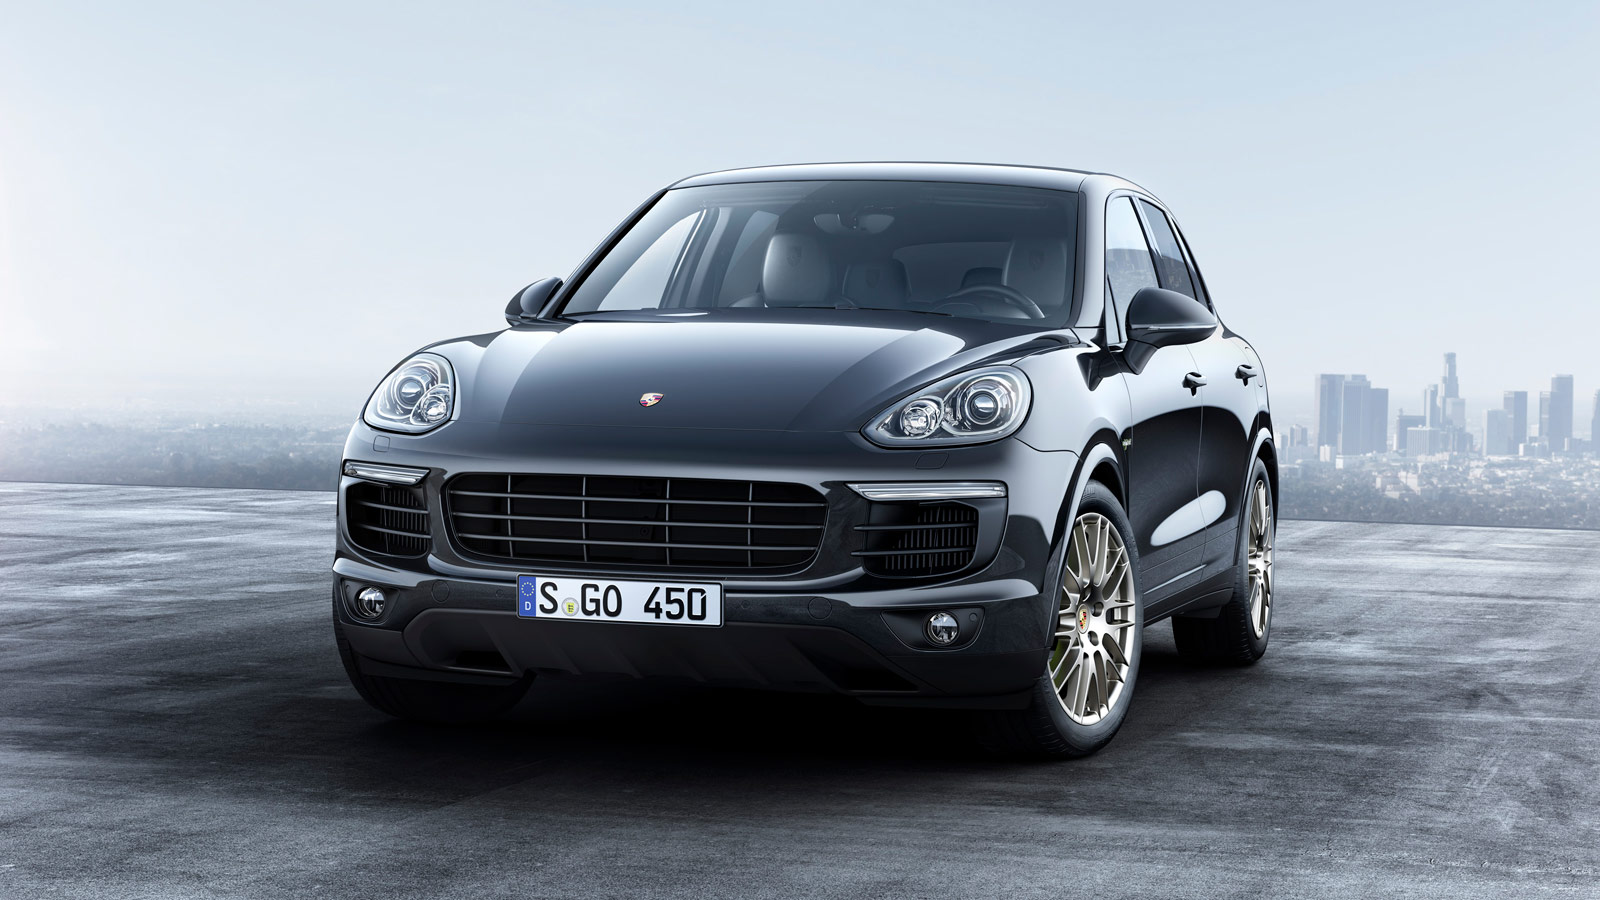 Porsche Introduce Elegant And Exclusive Cayenne Platinum Edition